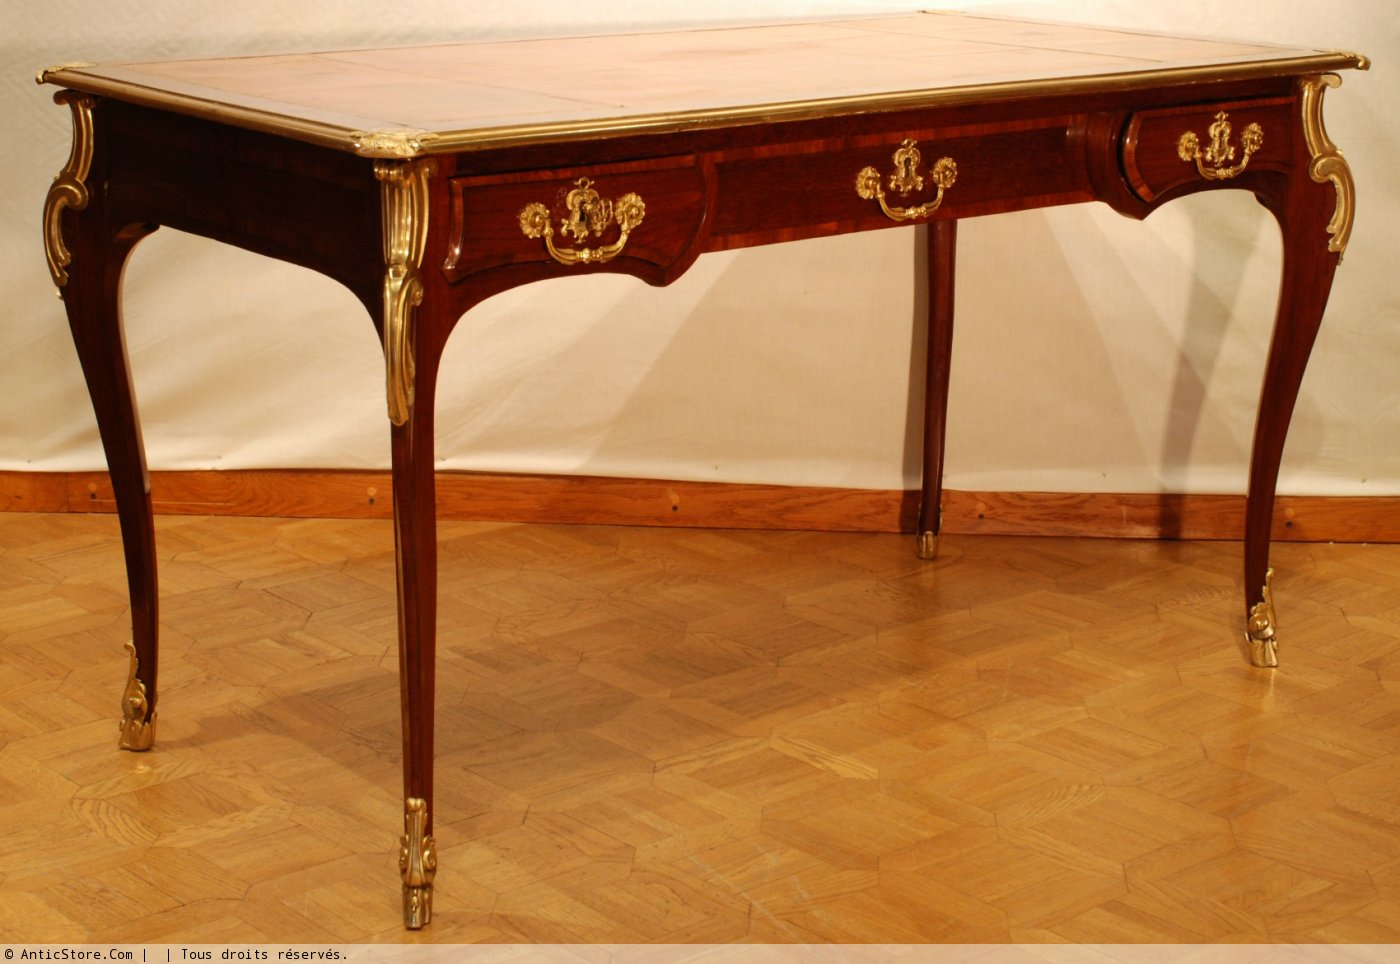 A louis xv bureau plat attributed to balthazard lieutaud for Bureau louis xv